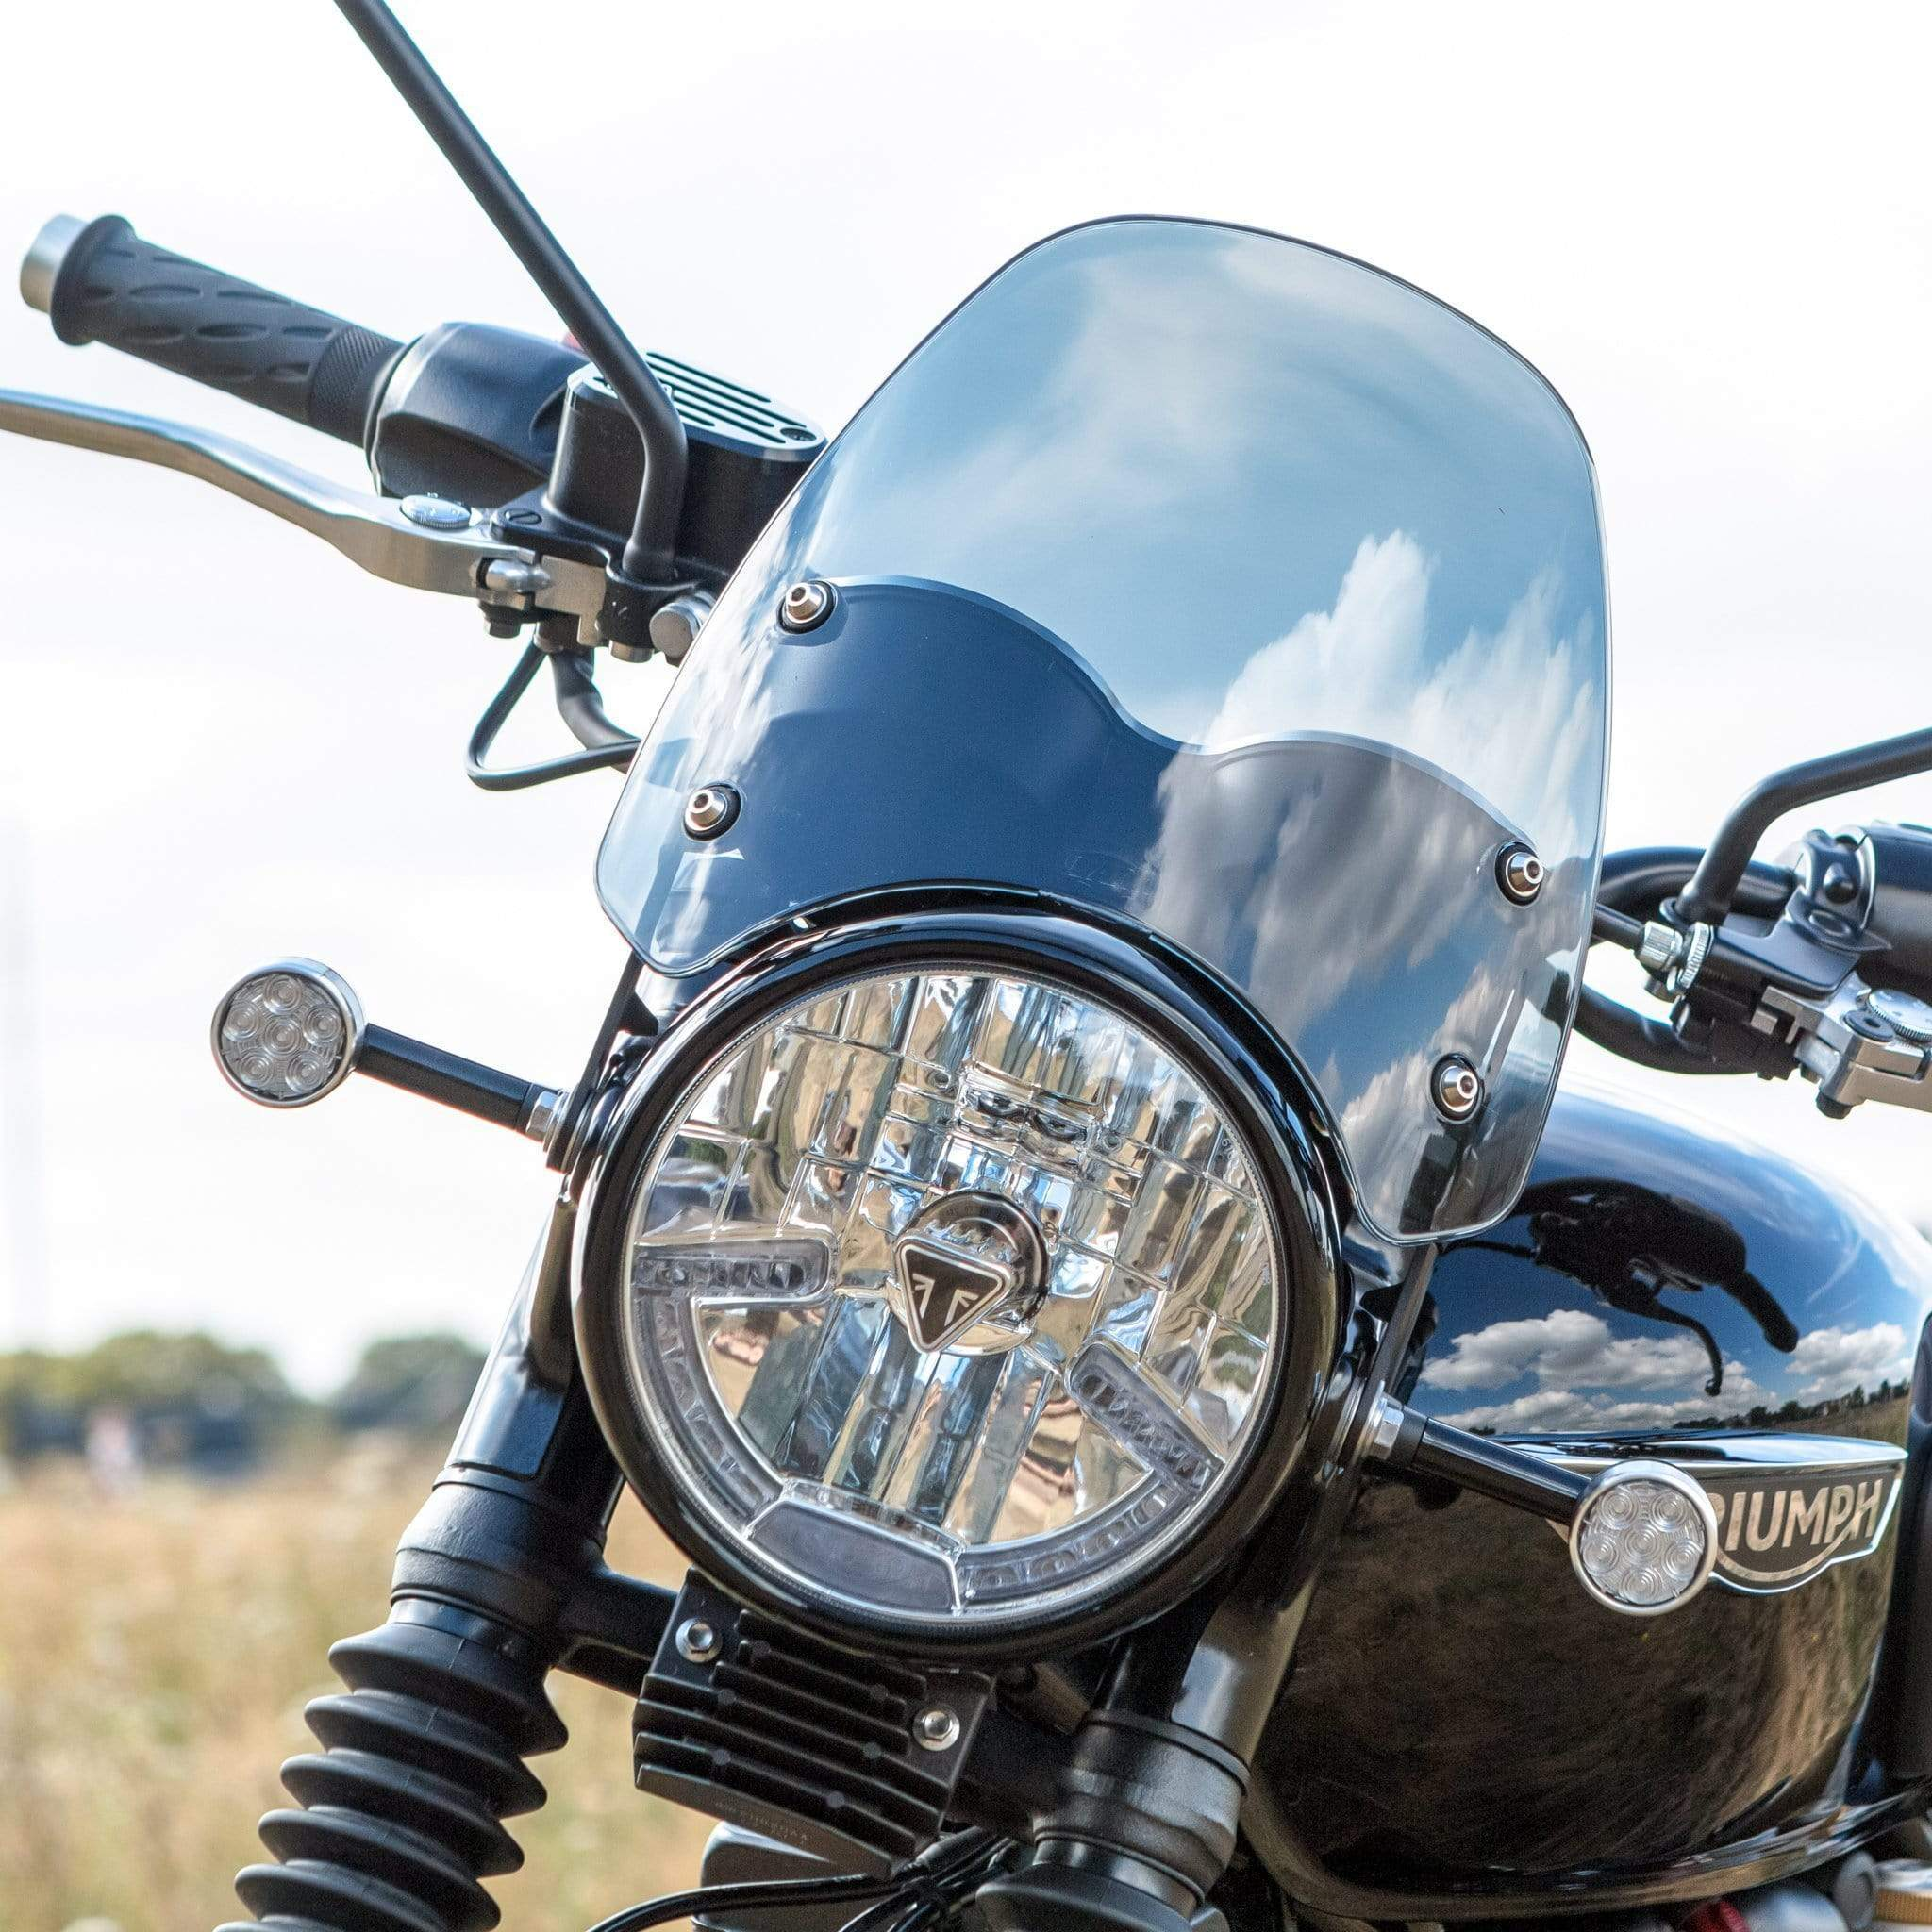 Triumph Bonneville T100 / T120 (water-cooled) - Classic Classic Flyscreen Dart Flyscreen Windshield